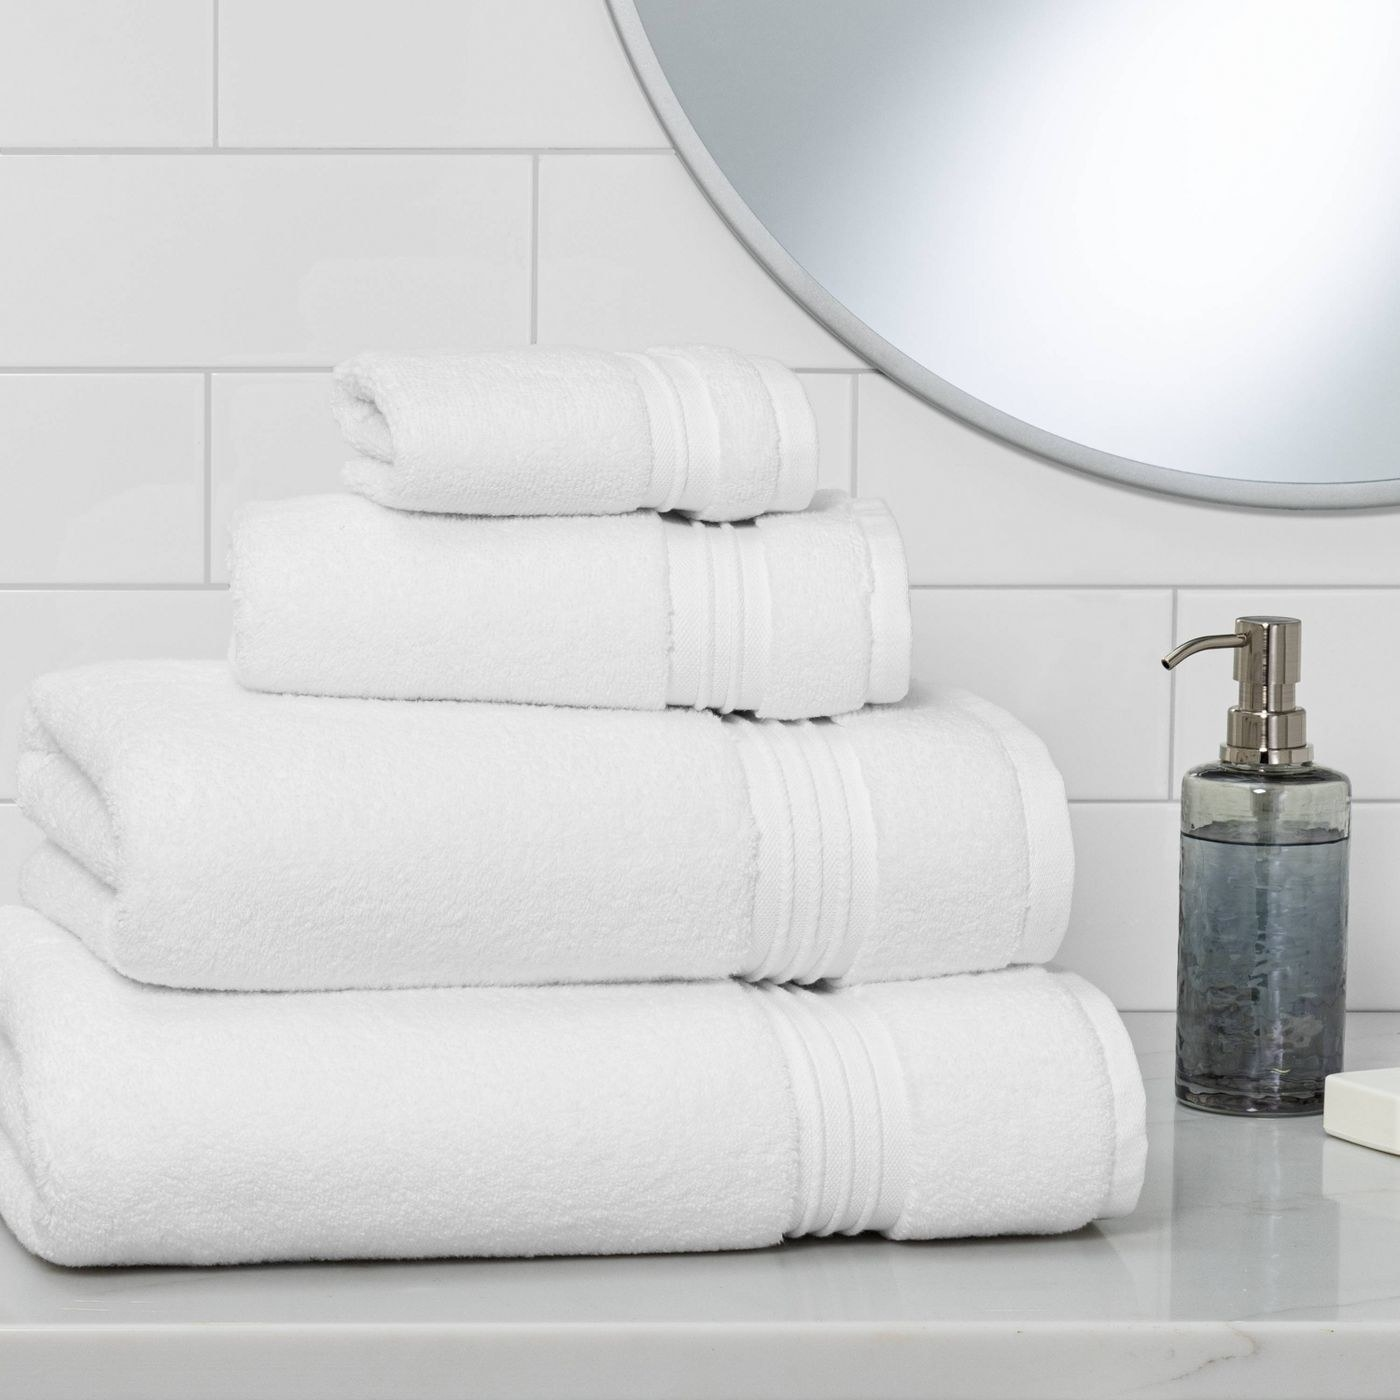 The white towels